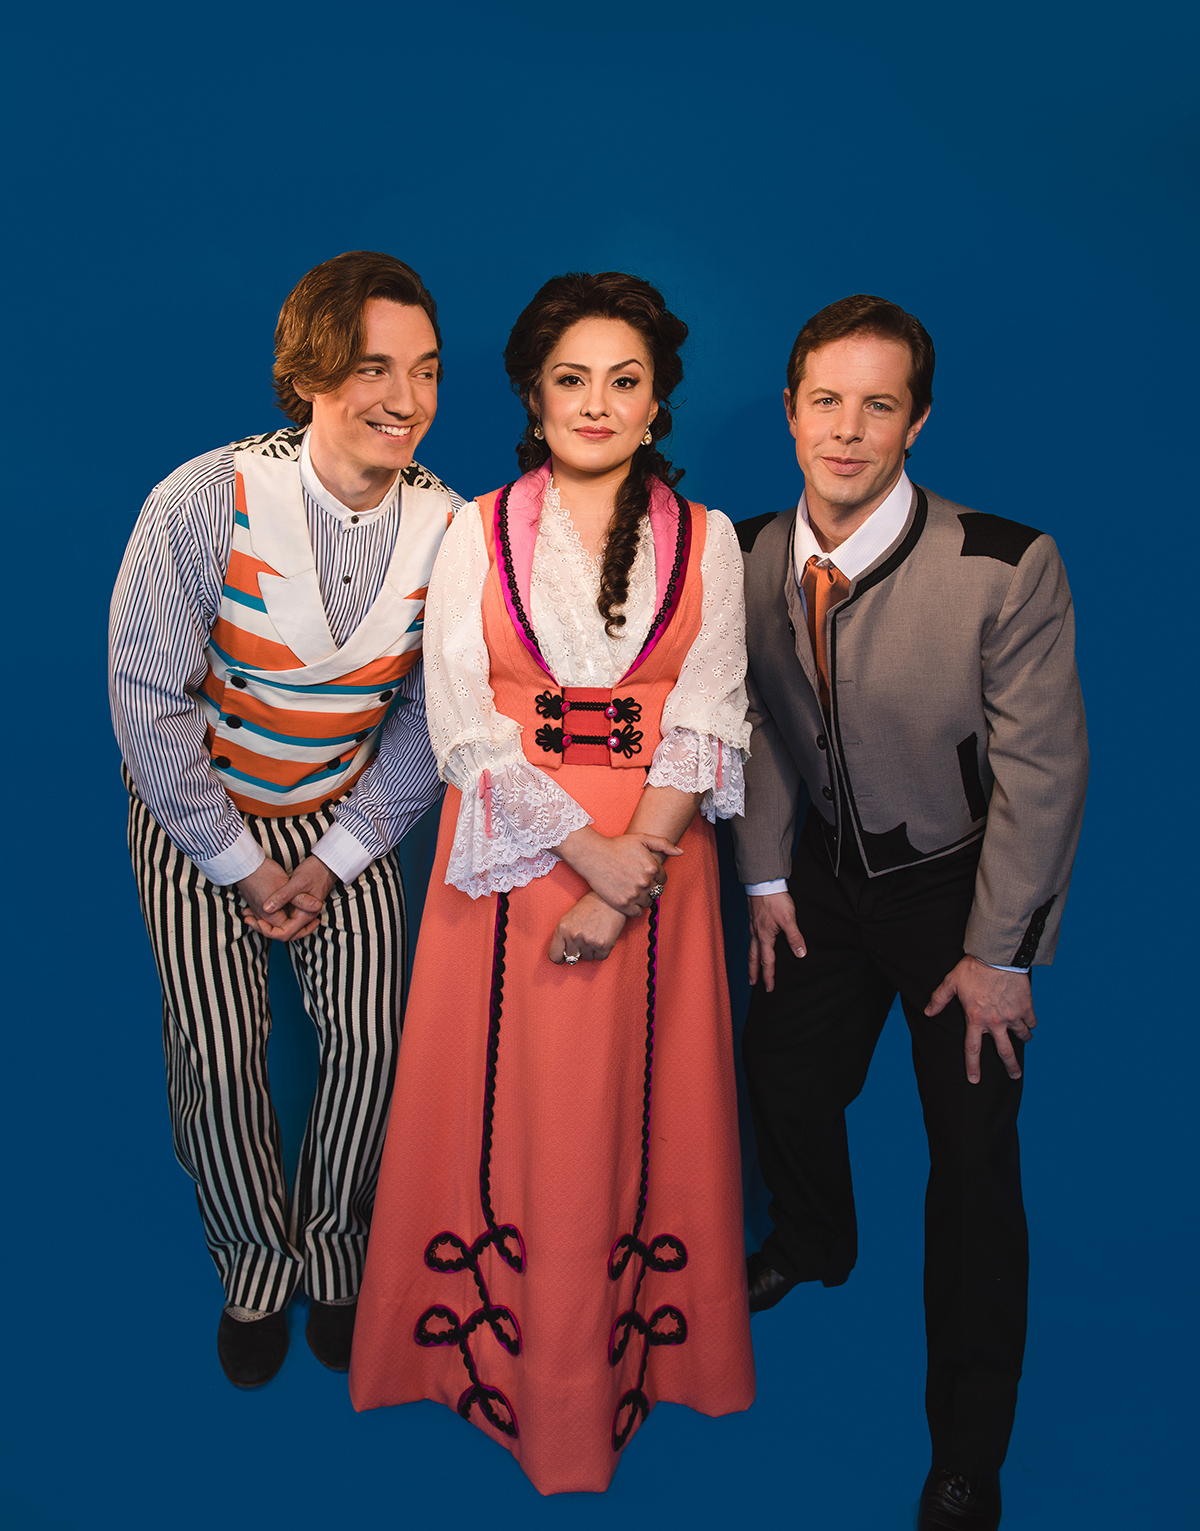 BWW Review: THE BARBER OF SEVILLE at Granada Theatre